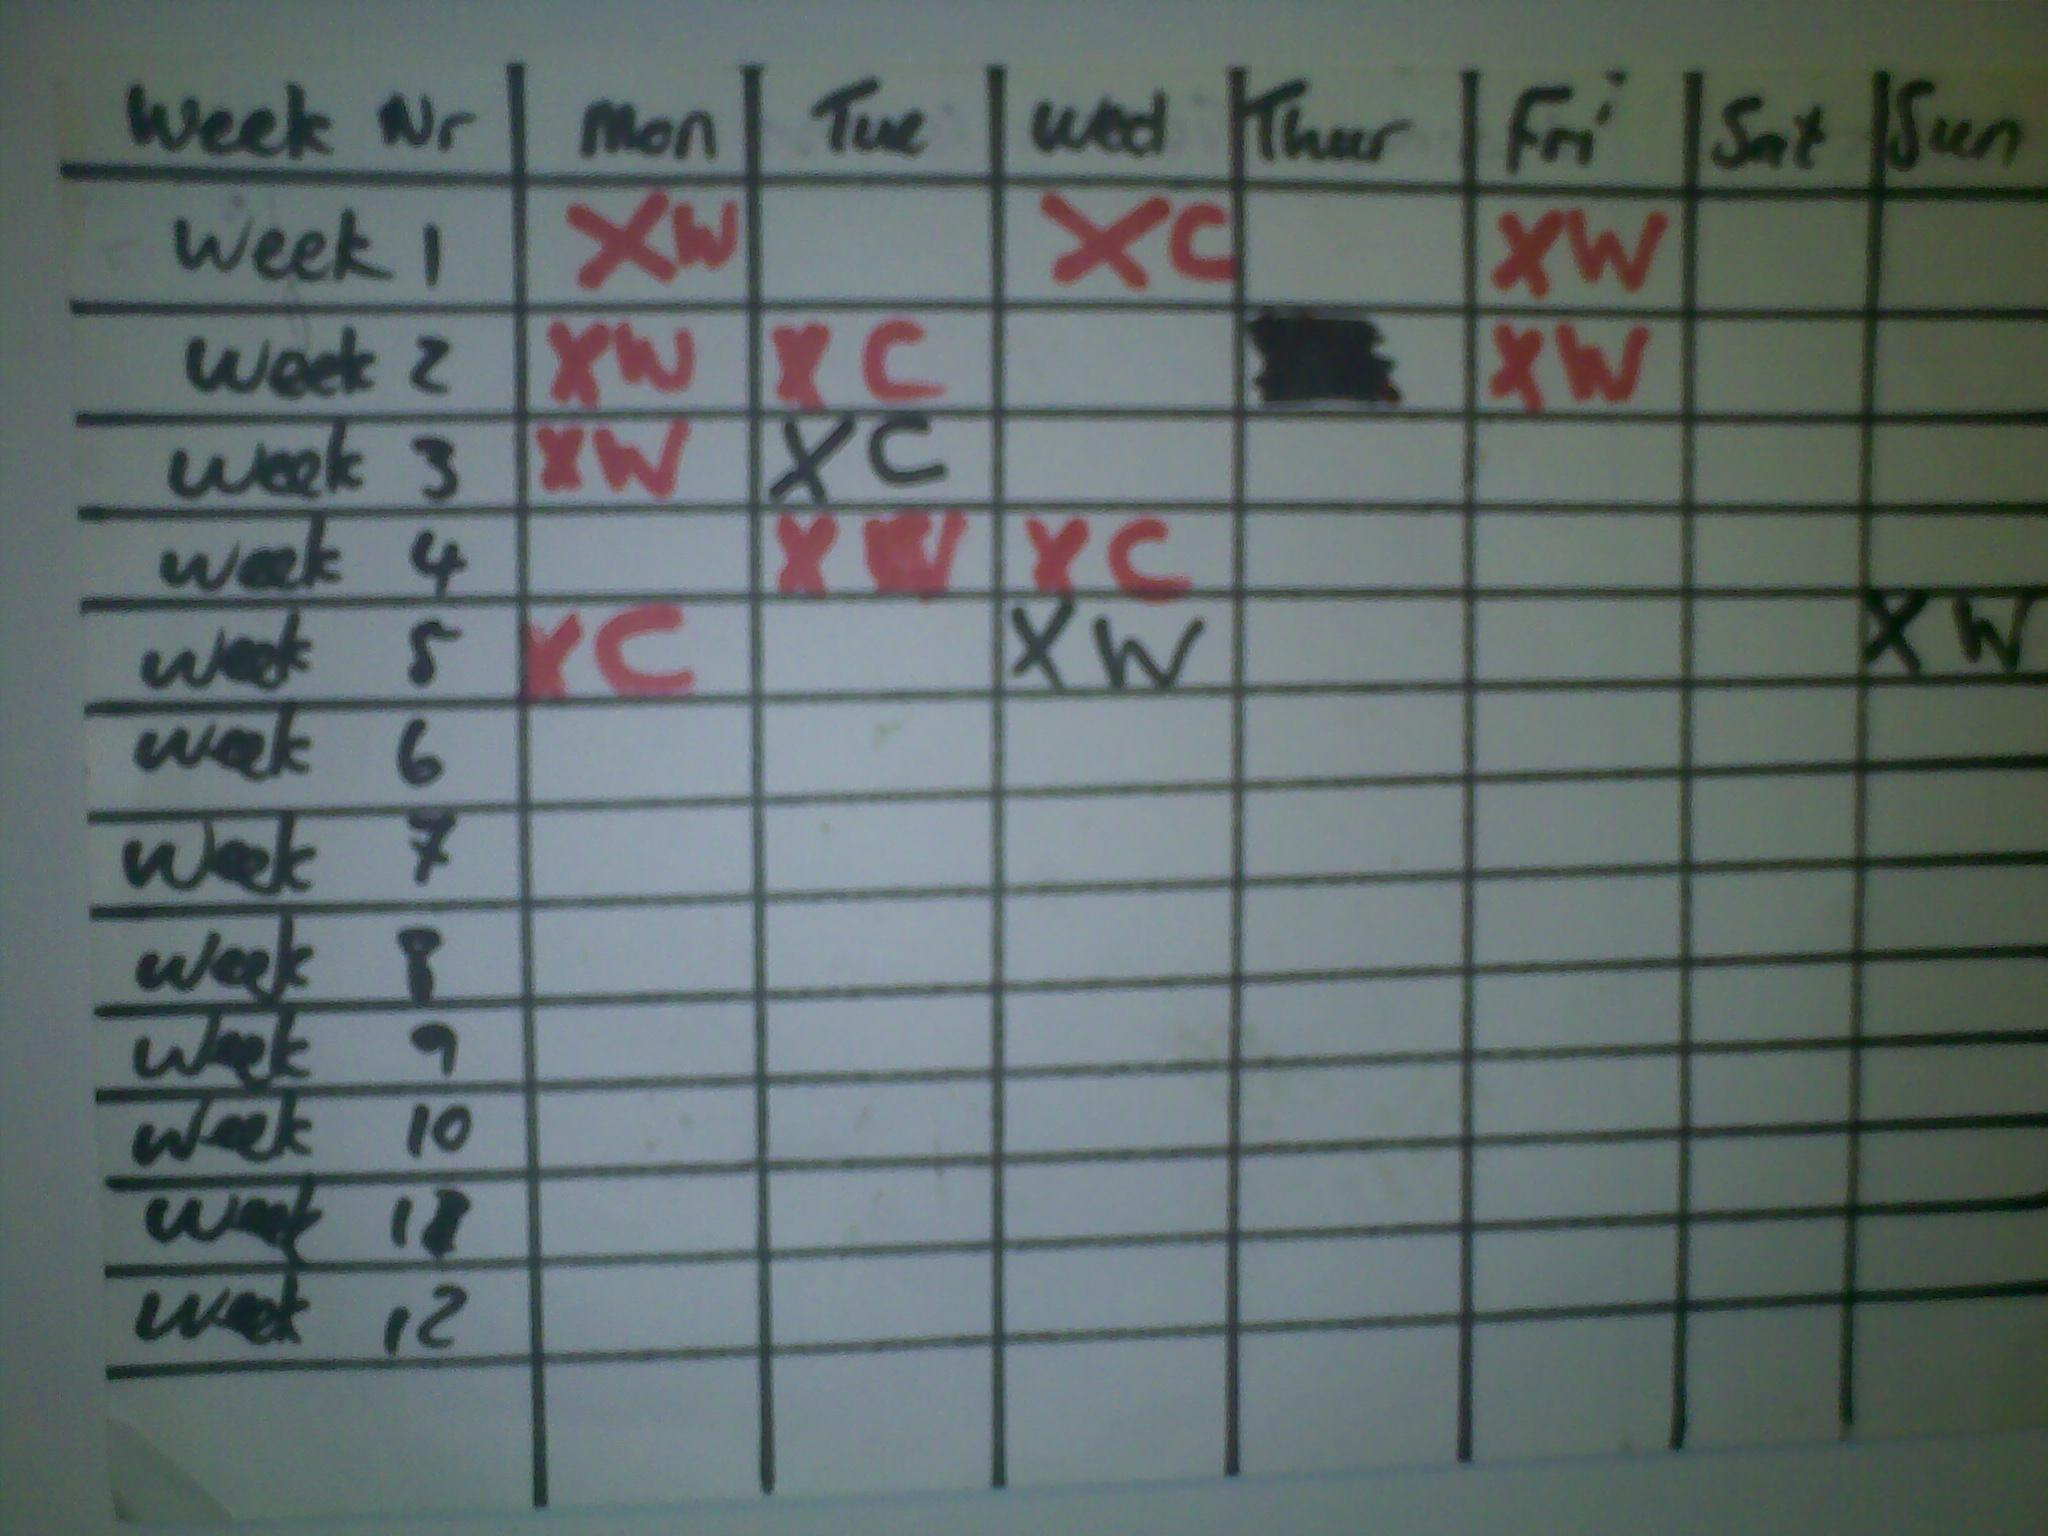 Report Back Personal Kanban For Exercise